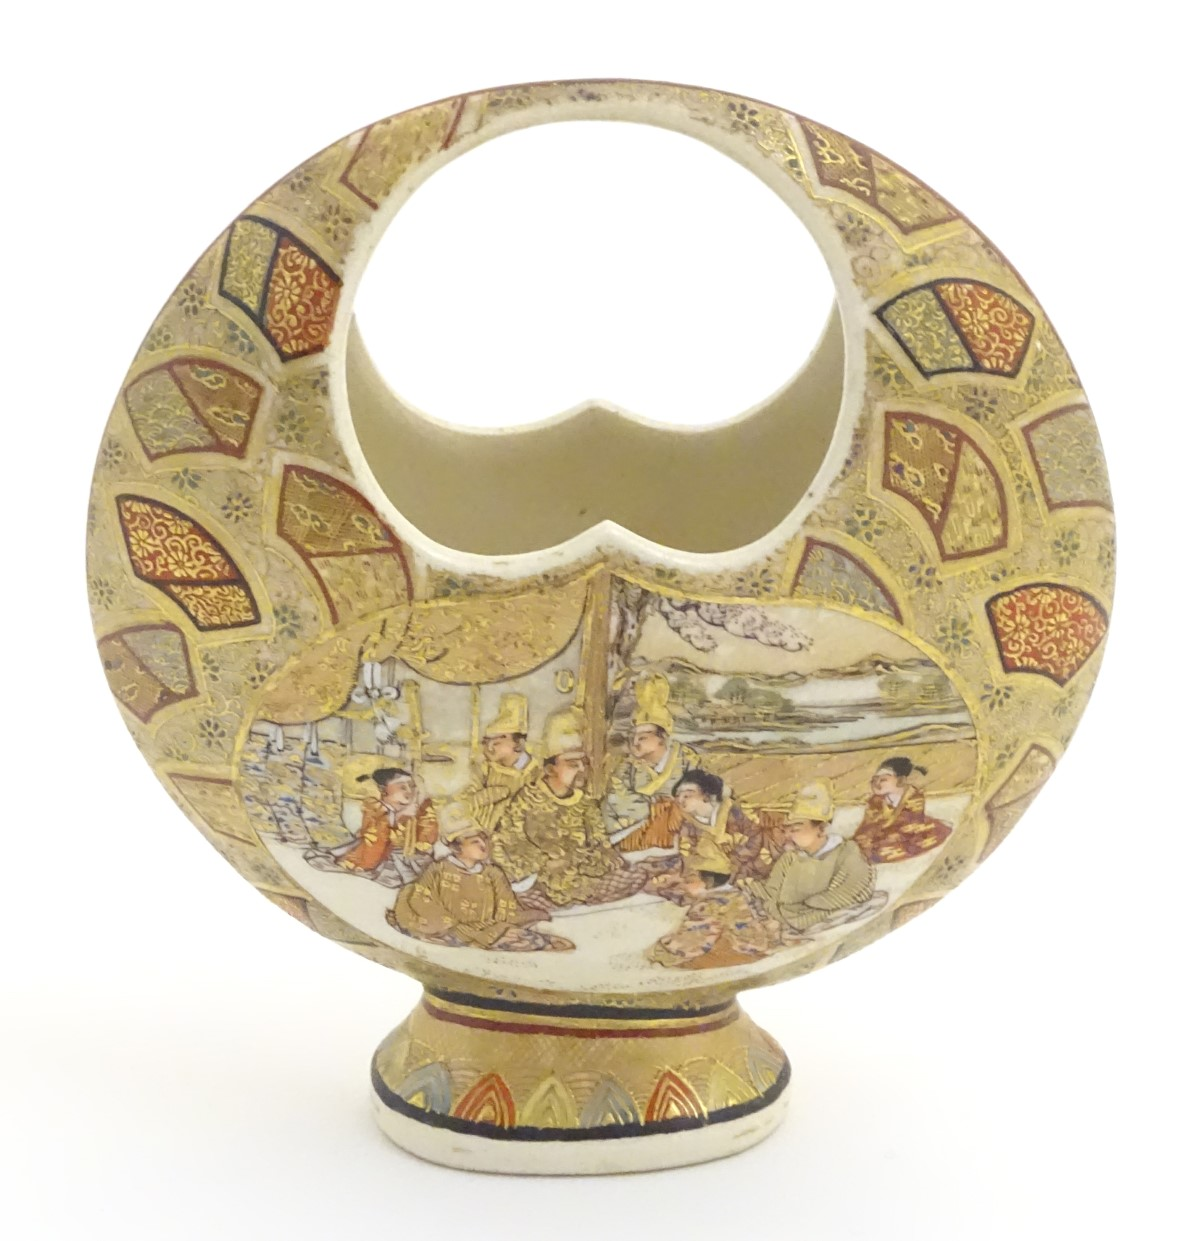 Lot 22 - A Japanese satsuma moon basket vase with hand painted decoration depicting figures seated around